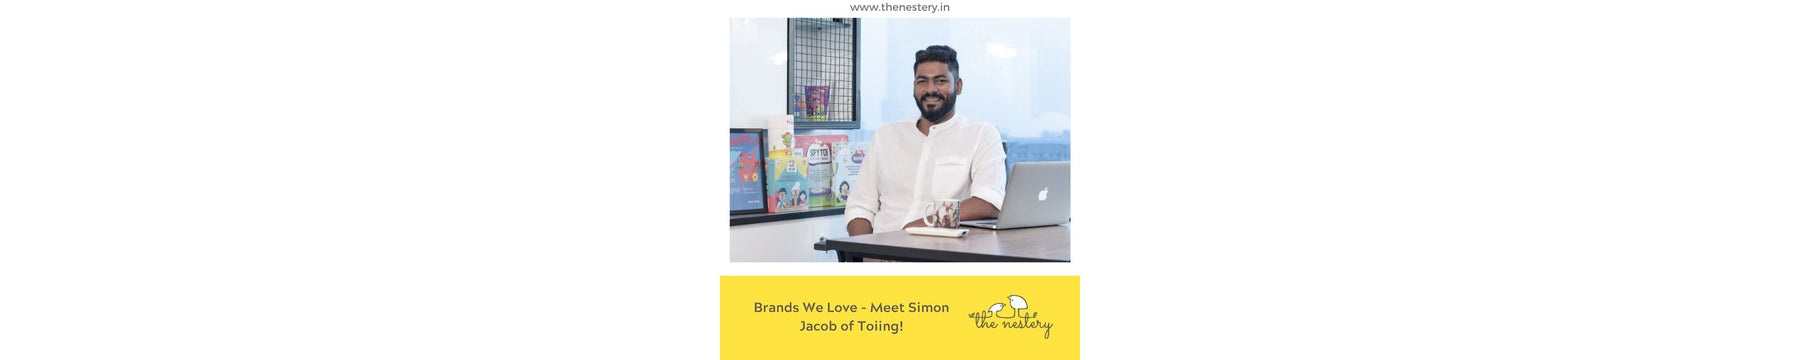 Brands We Love - Meet Simon Jacob of Toiing!